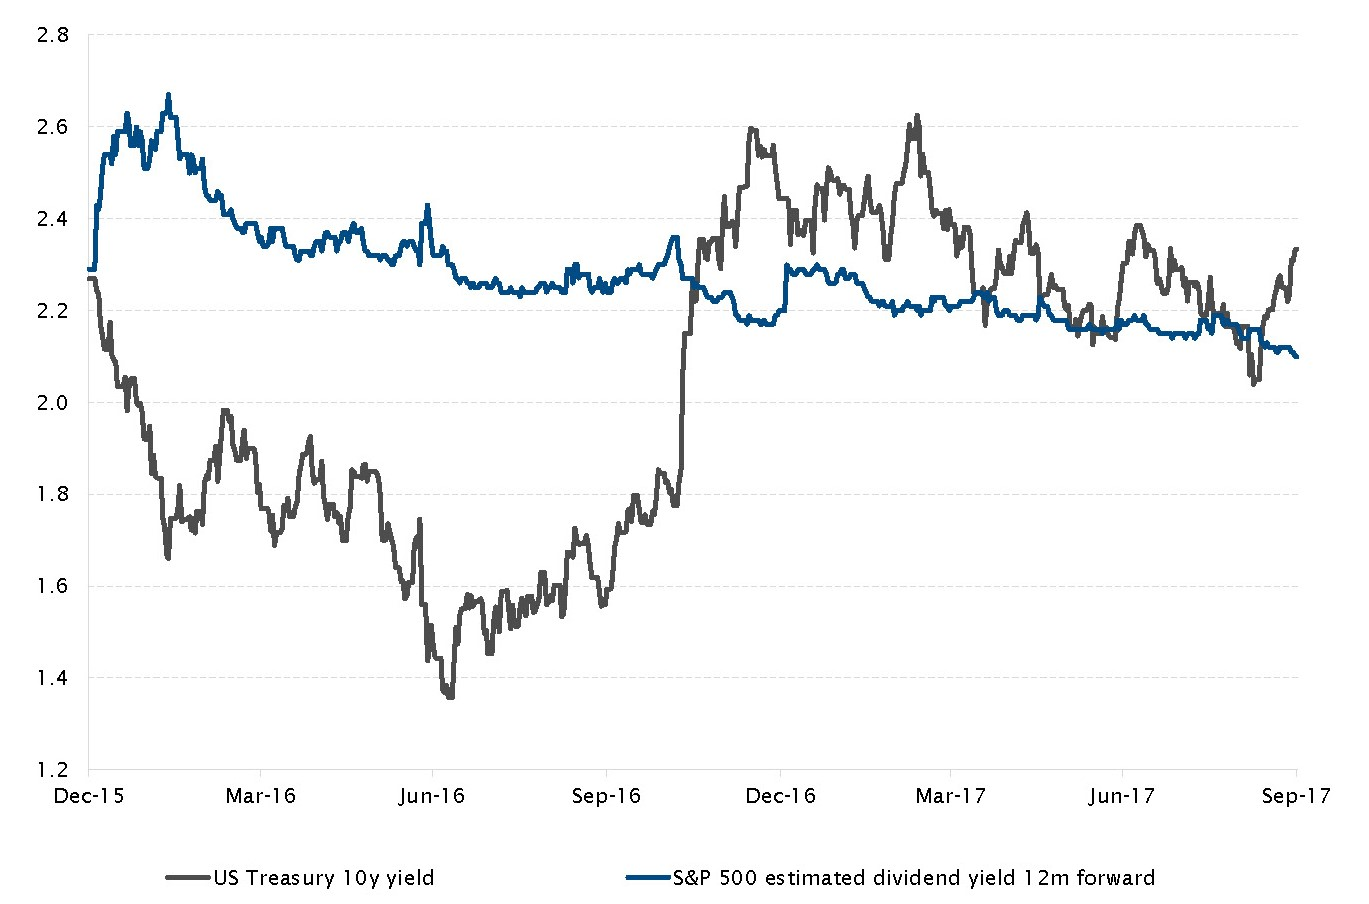 US Treasury 10y yield and S&P 500 estimated dividend yield (12 month forward)